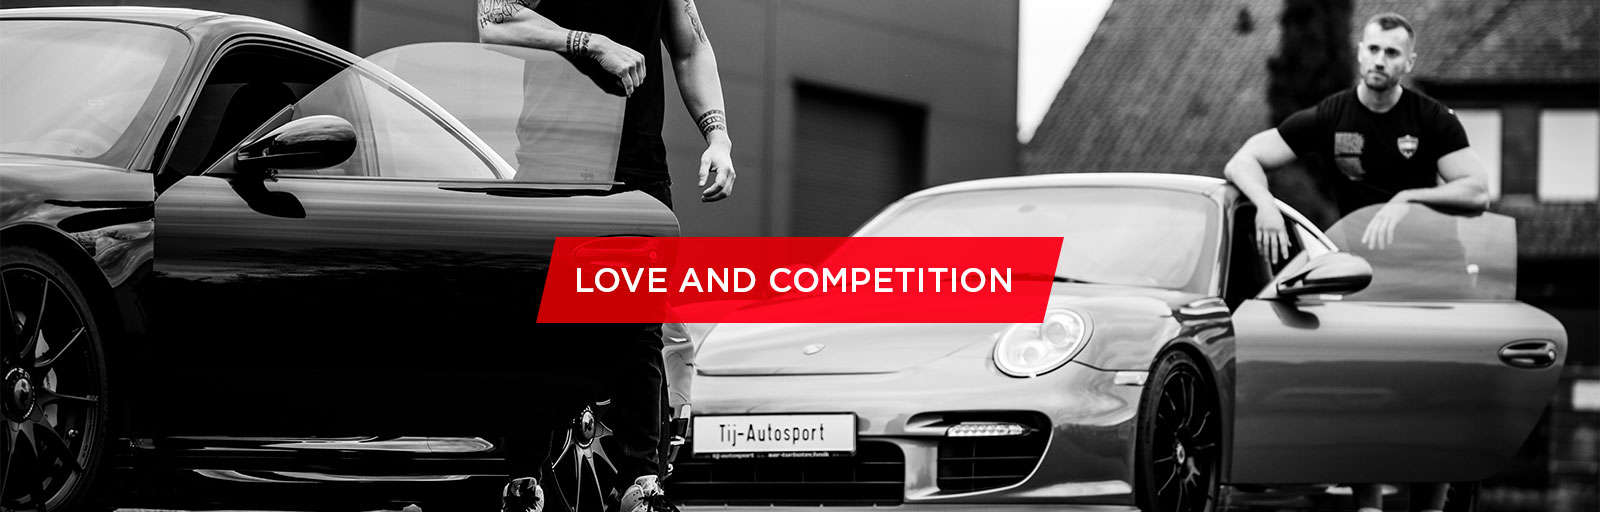 Love and Competition